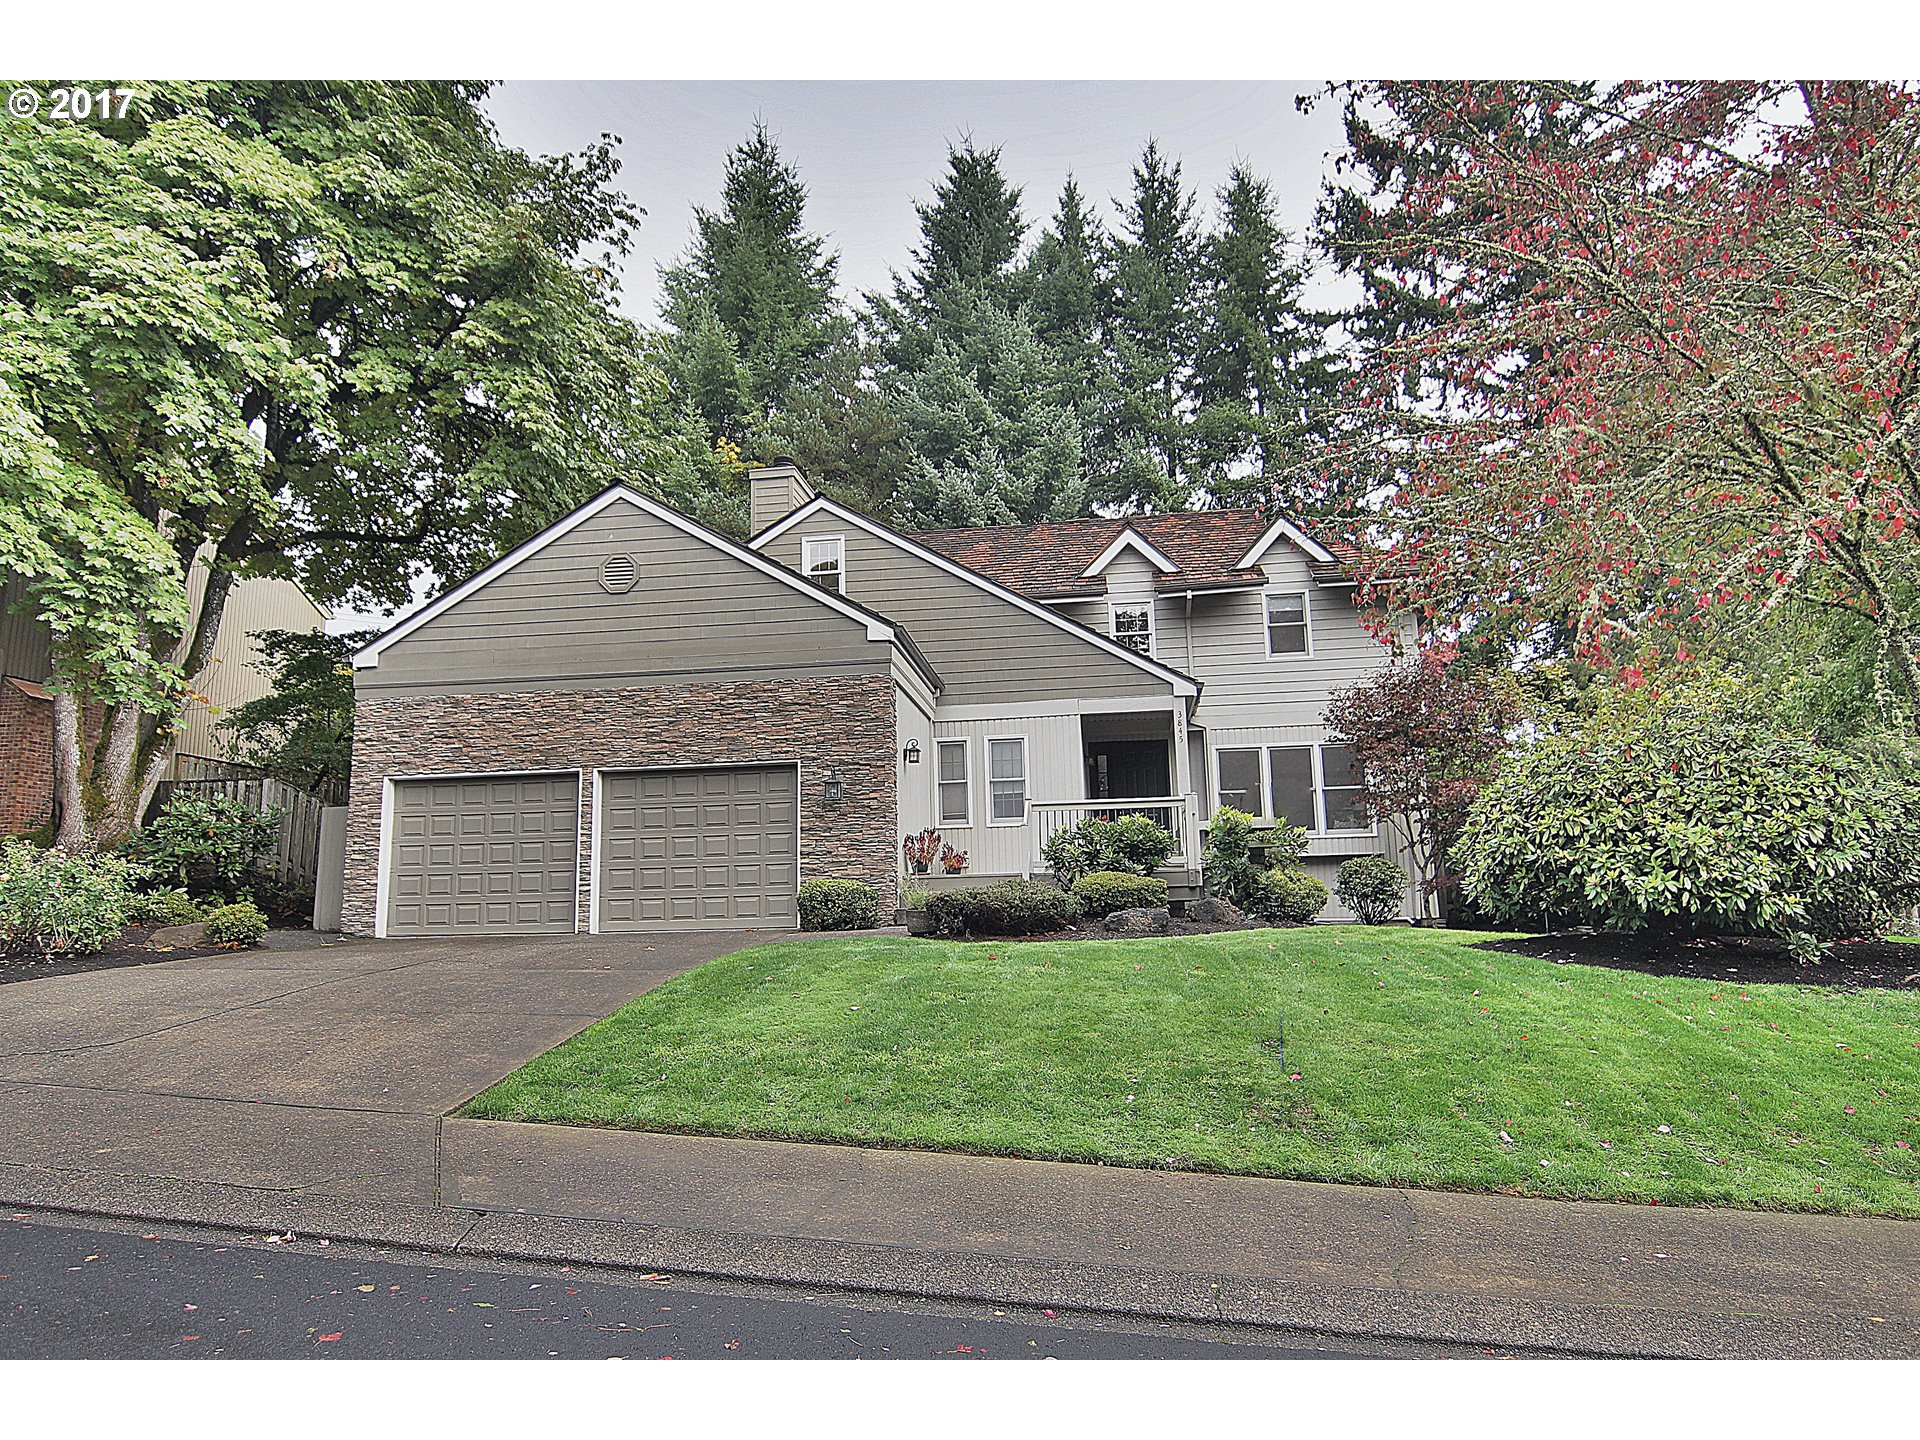 3845 TEMPEST DR, Lake Oswego, OR 97035